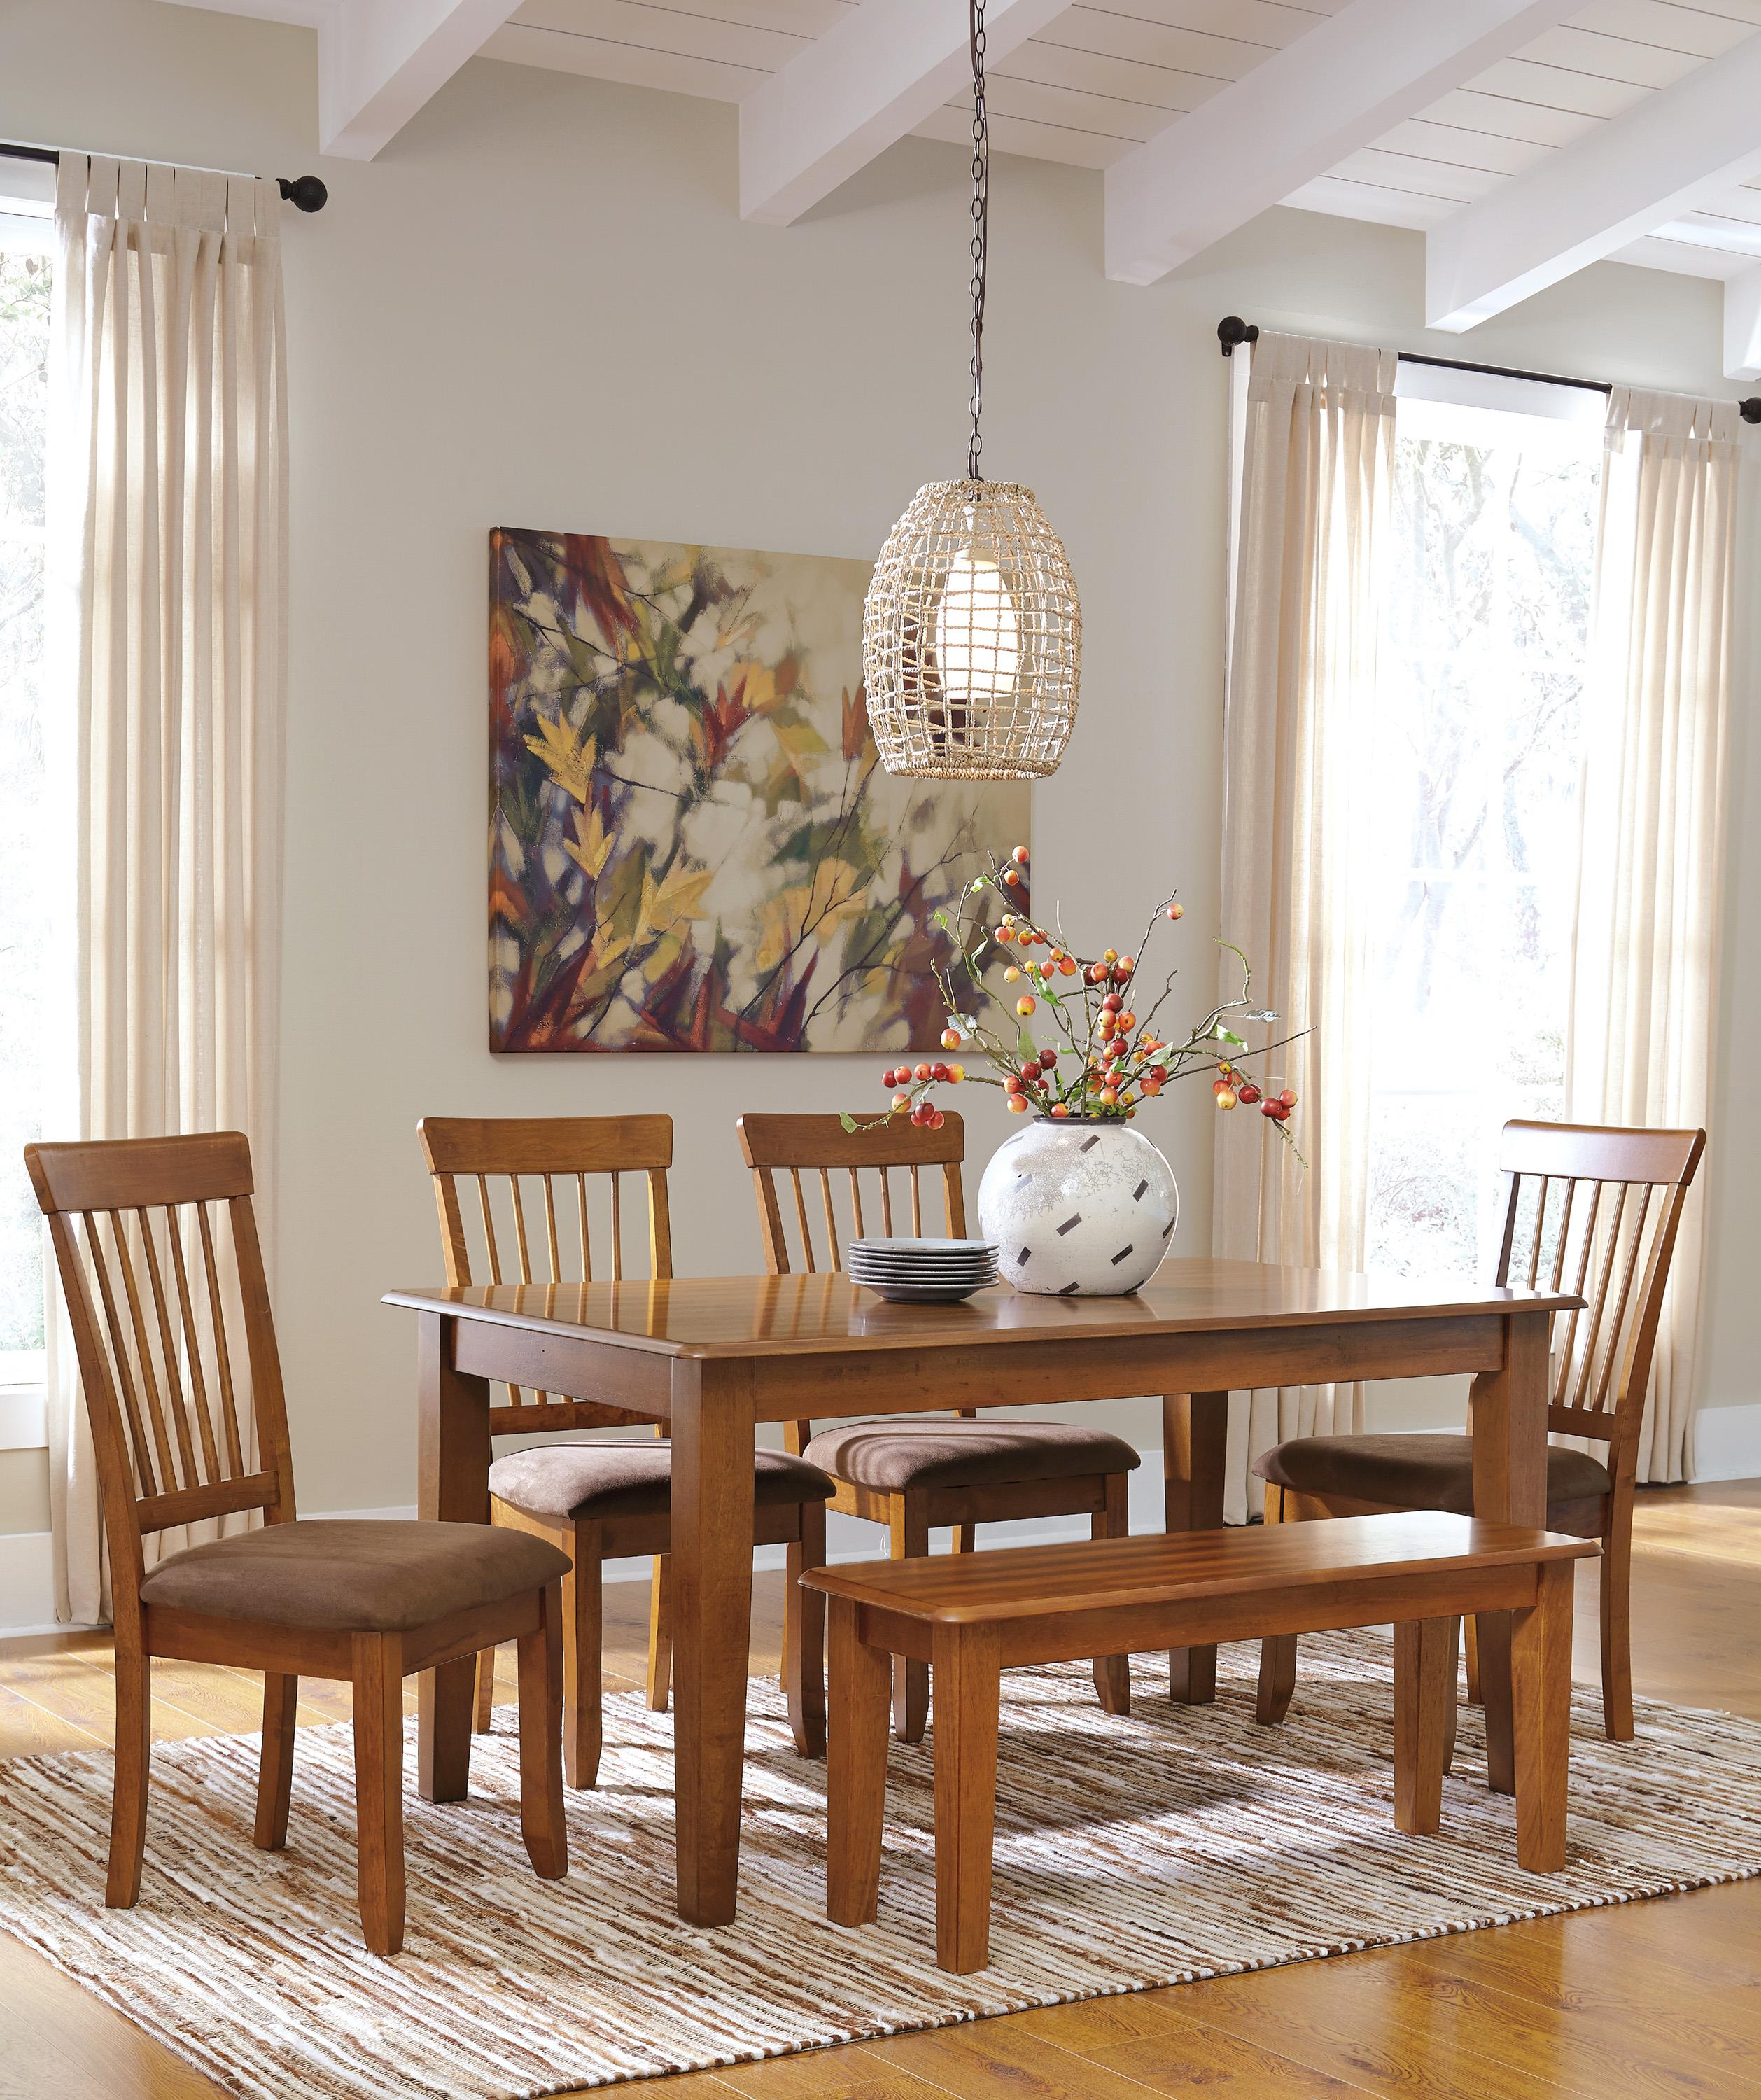 Payless Furniture Store Dining Room Tables: Ashley Furniture Berringer Hickory Stained 36x60 Kitchen